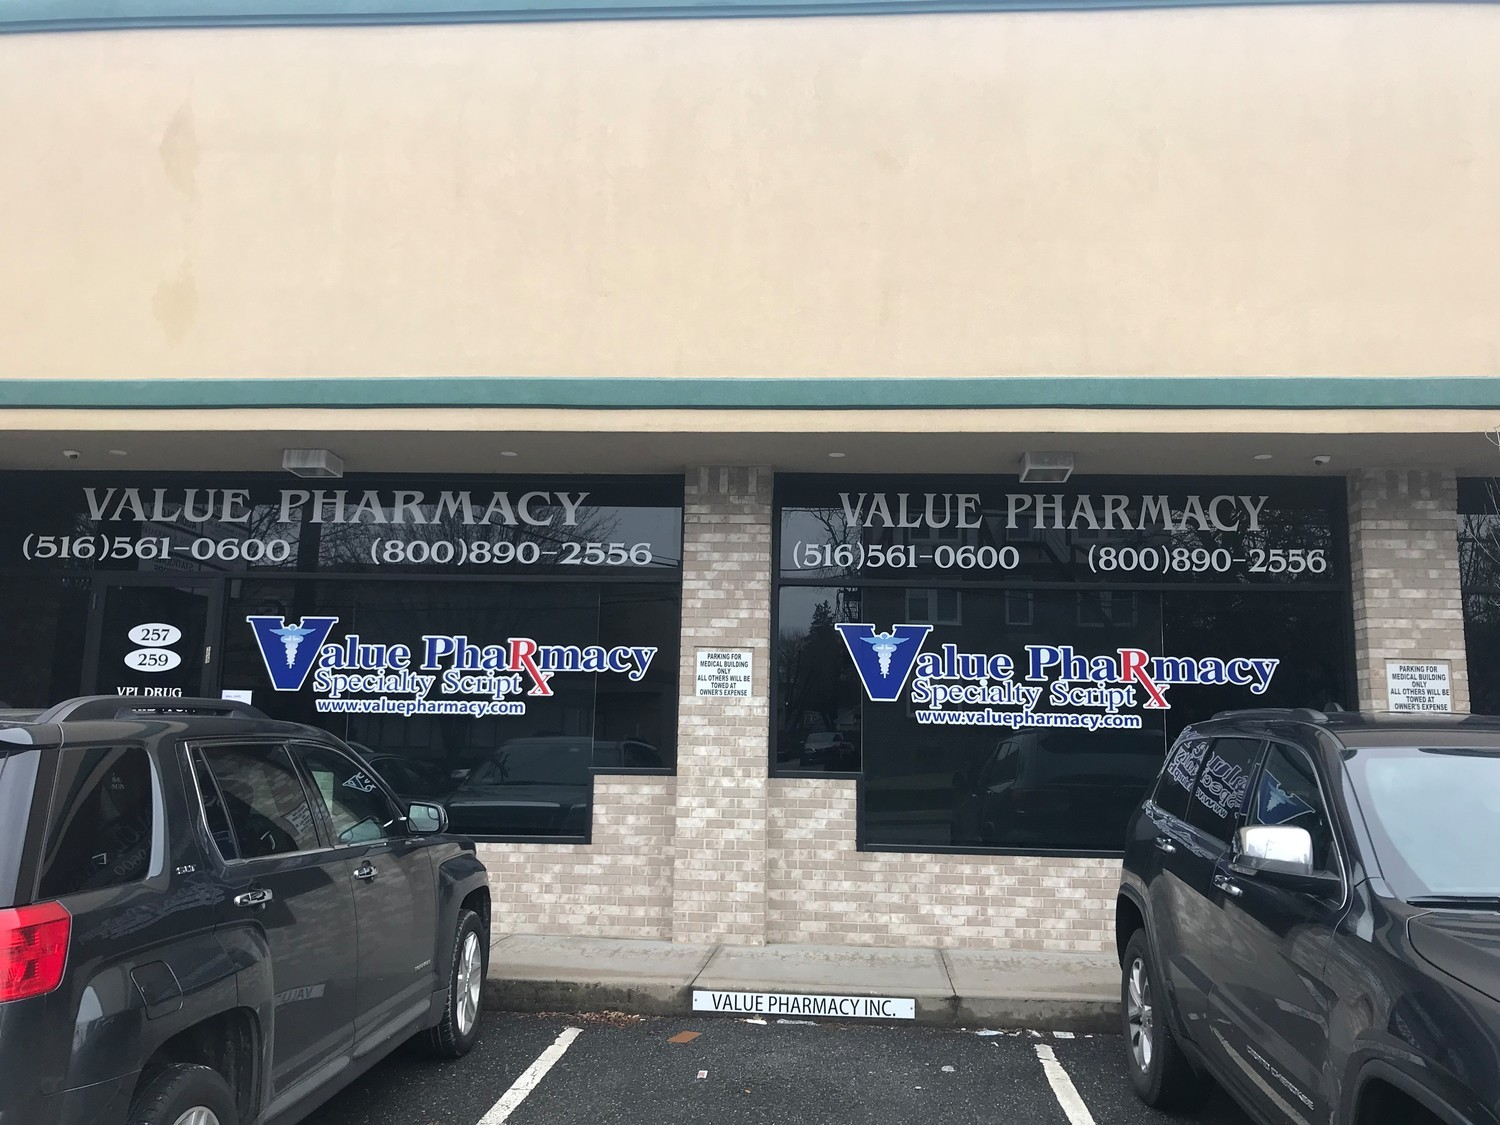 The co-owner of Value Pharmacy in Lynbrook pleaded guilty to defrauding Medicaid out of $1.5 million.